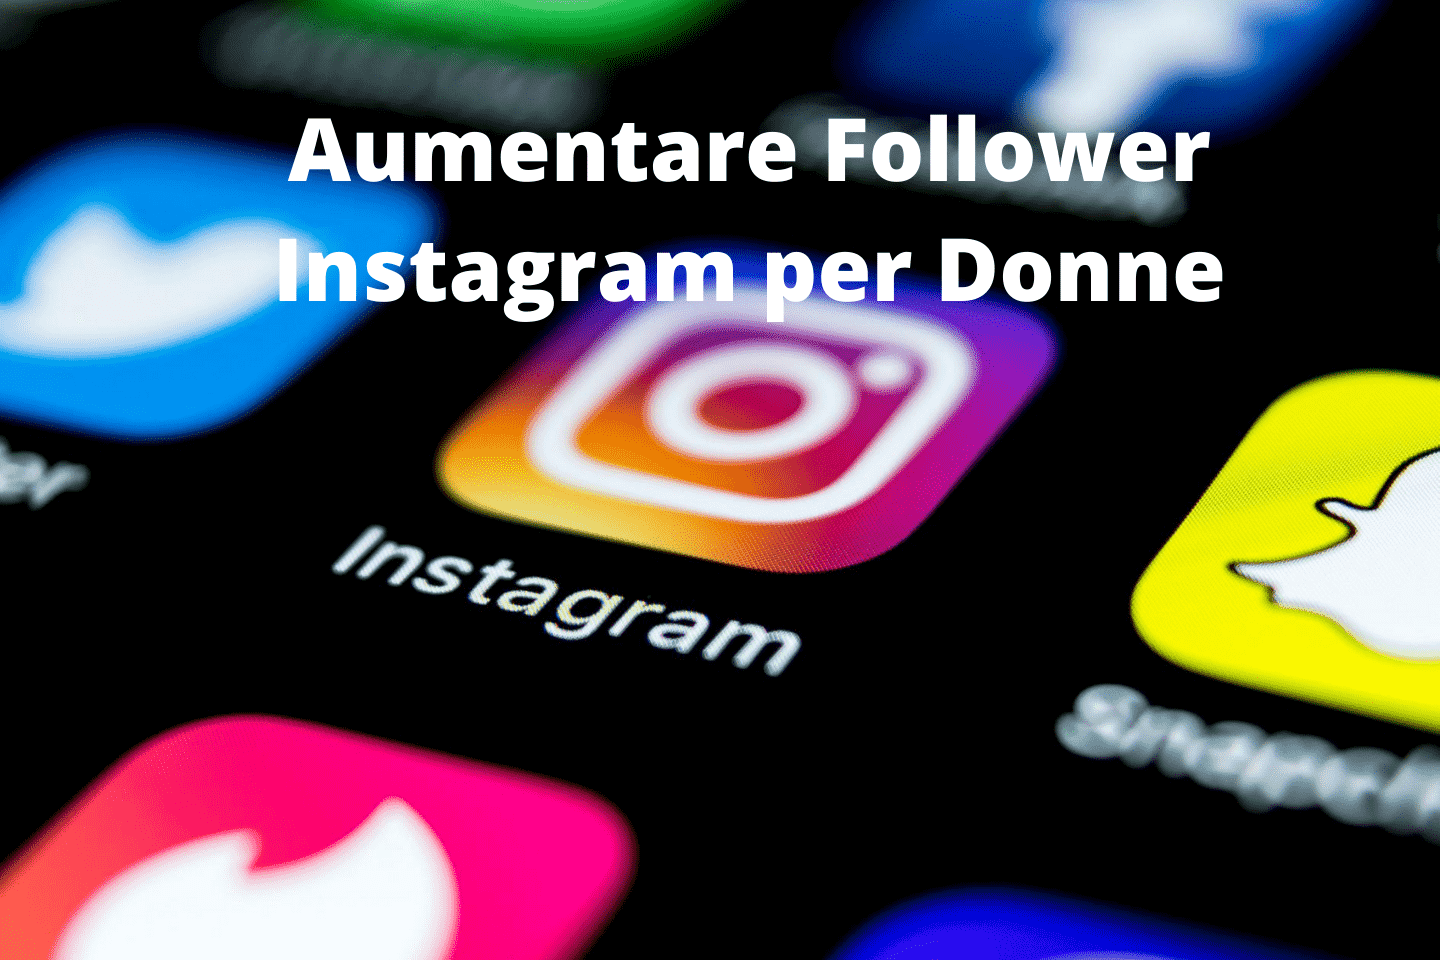 Aumentare Follower Instagram per Donne